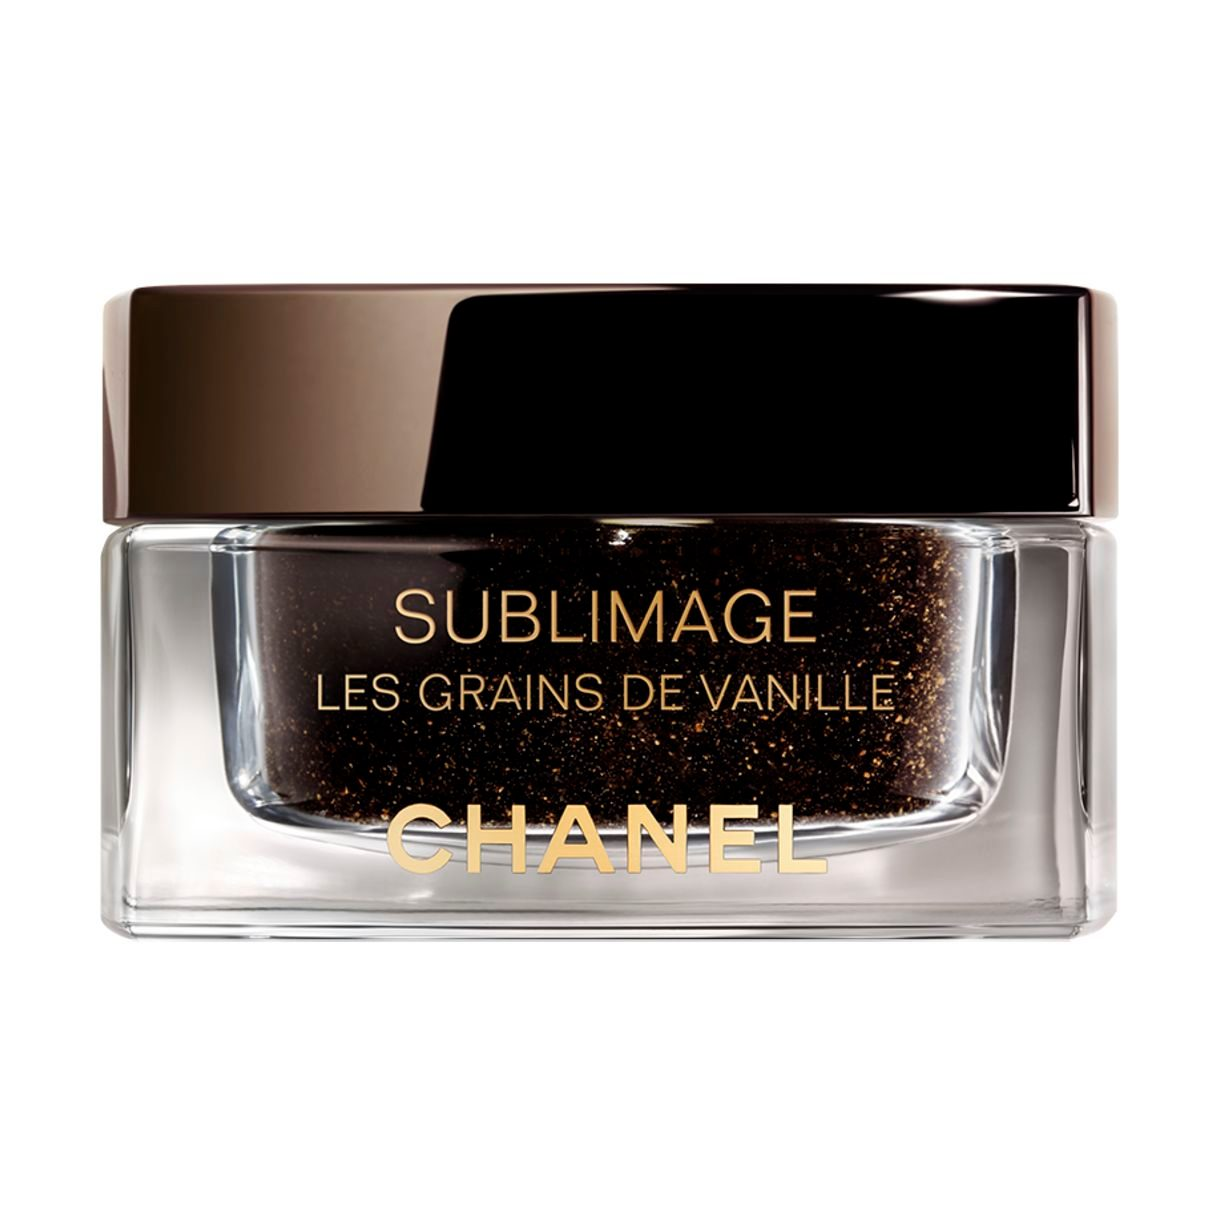 SUBLIMAGE GRAINS VANI. 50g